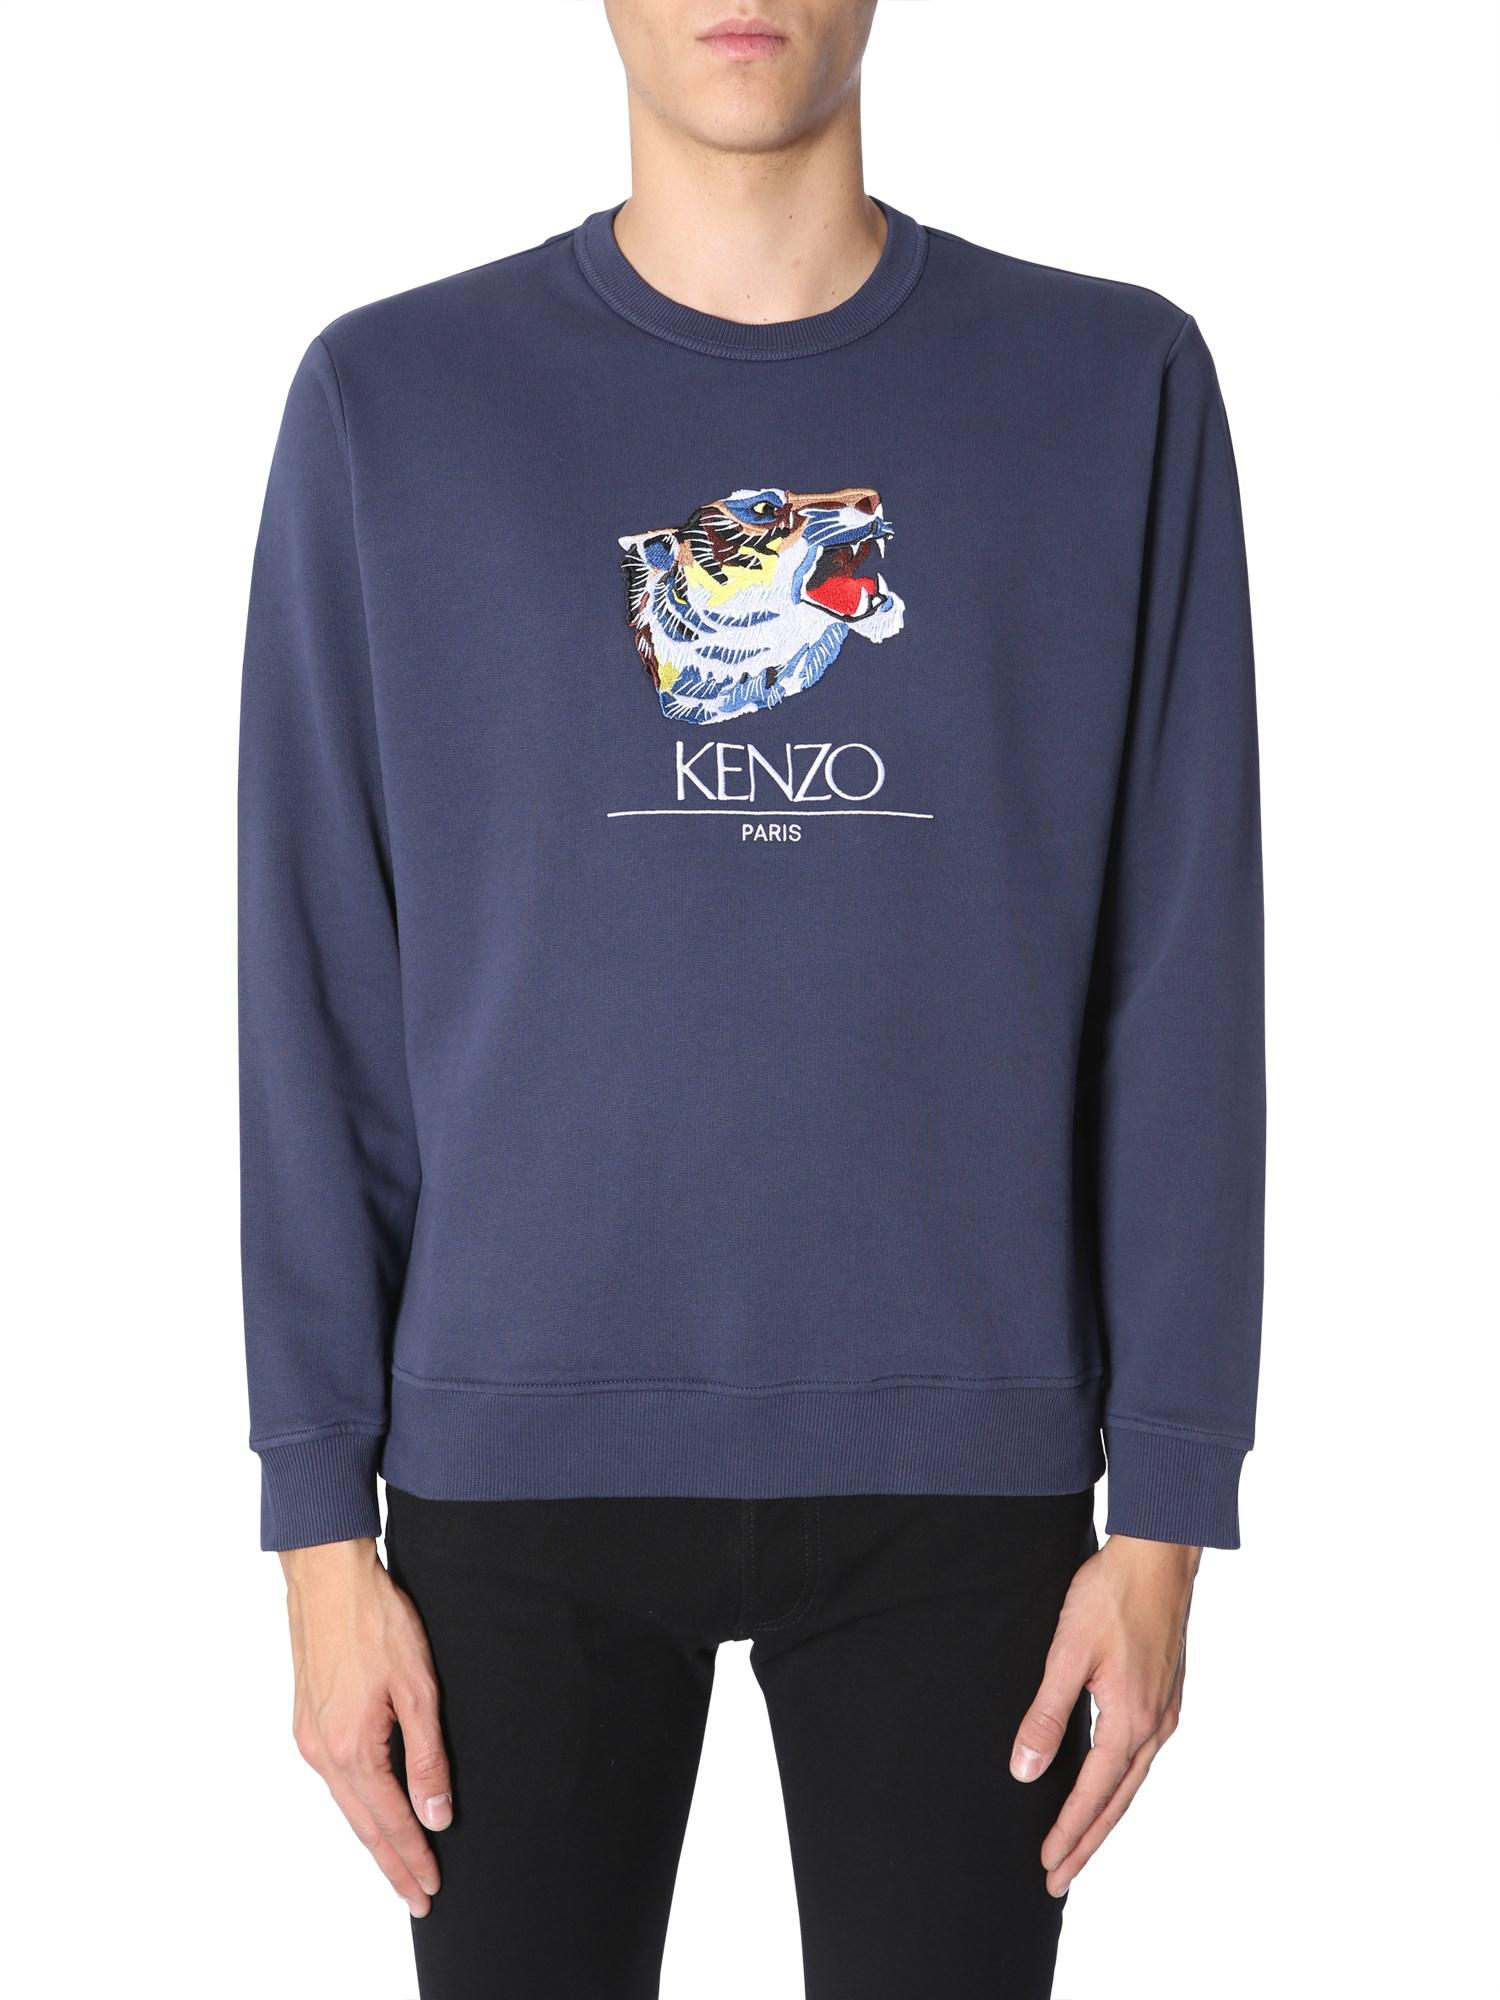 7da3a70ac5 KENZO - Blue Crewneck Cotton Sweater With Tiger Head Embroidery for Men -  Lyst. View fullscreen